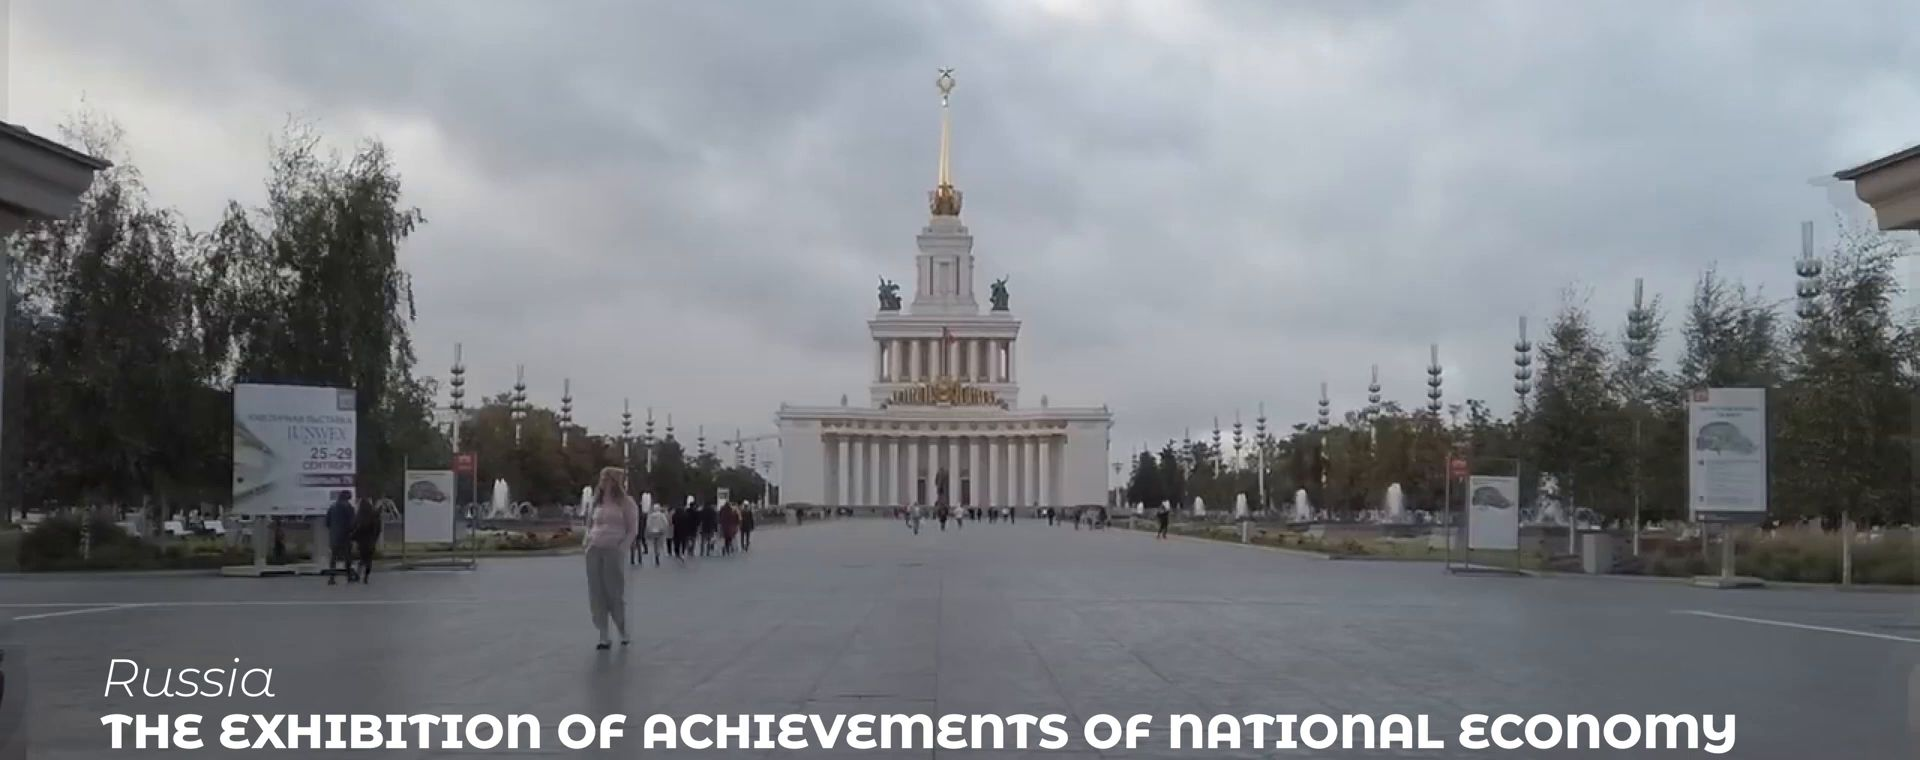 EXHIBITION OF ACHIEVEMENTS OF NATIONAL ECONOMY